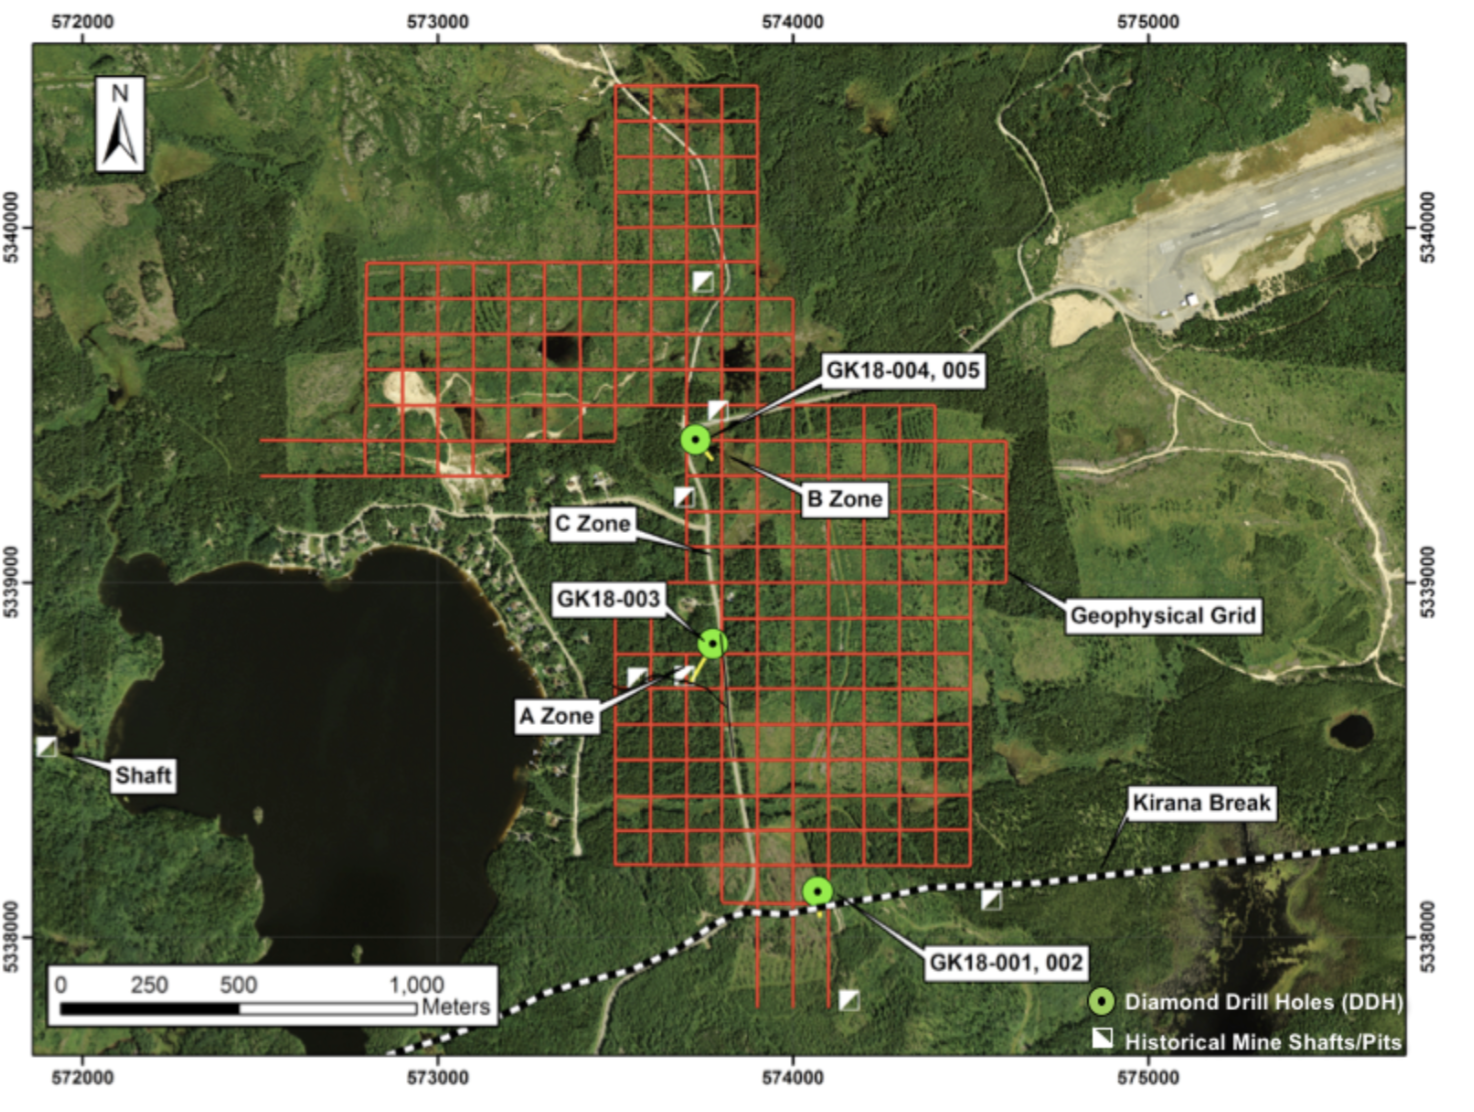 Figure #2 demonstrating geophysical grid location of the Goodfish Patents and diamond drill locations.